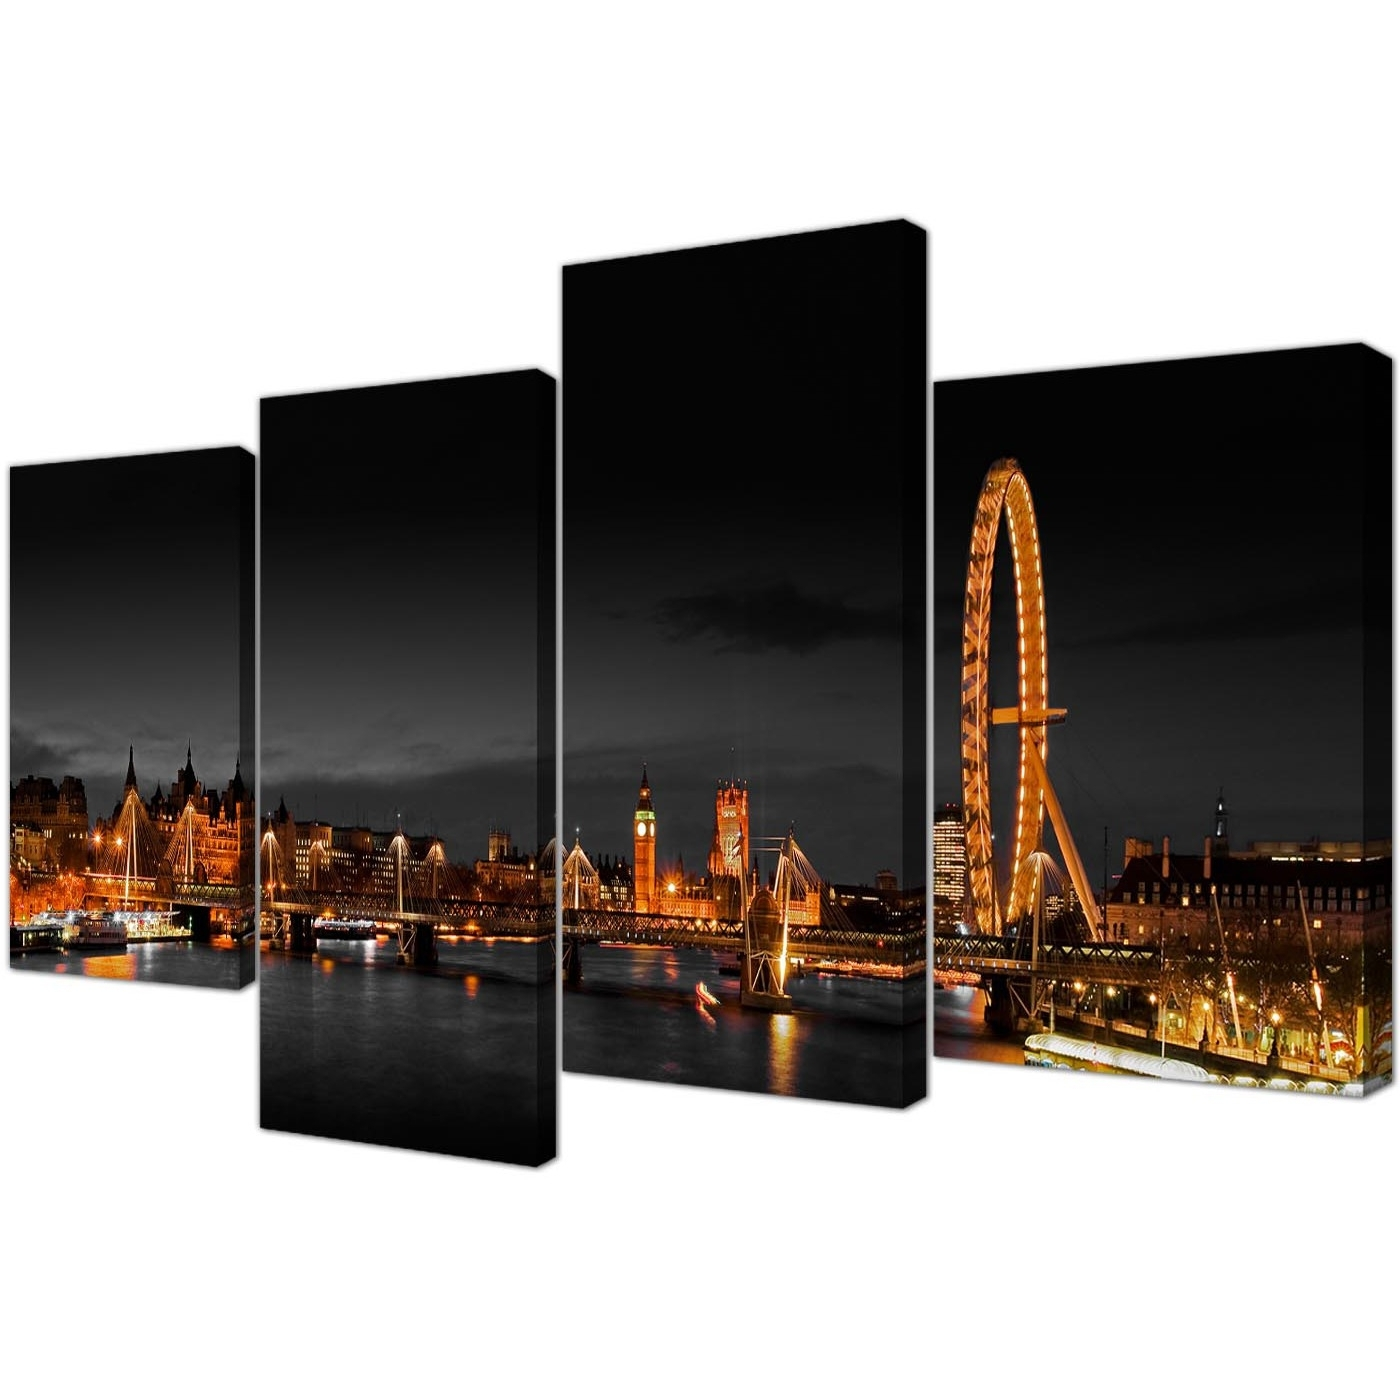 Canvas Wall Art Of Night Time London Eye For Your Office – Set Of 4 Pertaining To Famous London Wall Art (View 10 of 15)